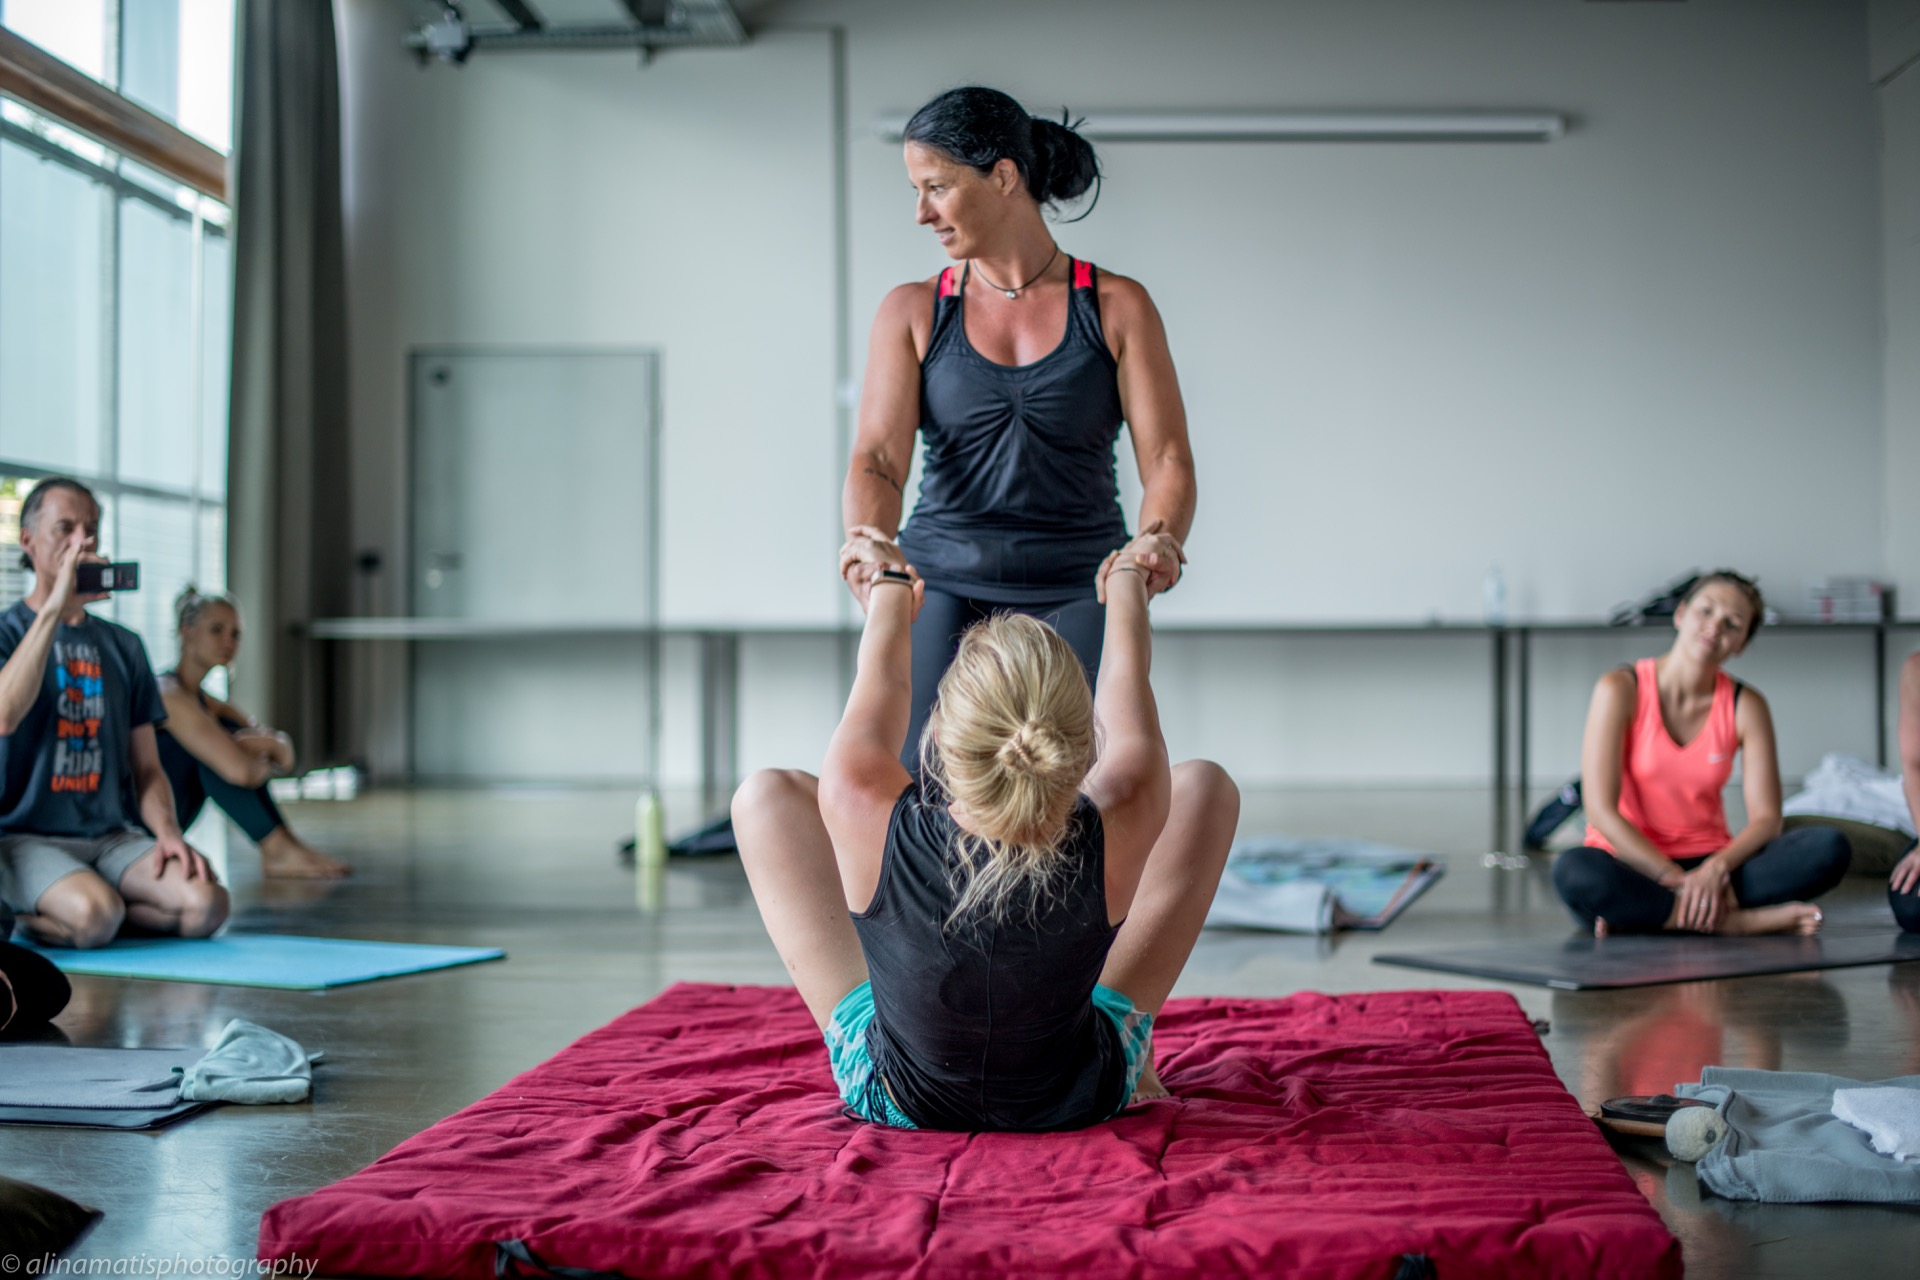 Hie-Kim-Friends-2018-Yoga-Retreat-Alina-Matis-Photography-088 - Hie Kim Yoga - Yoga Retreat - Yoga Workshops und Reisen